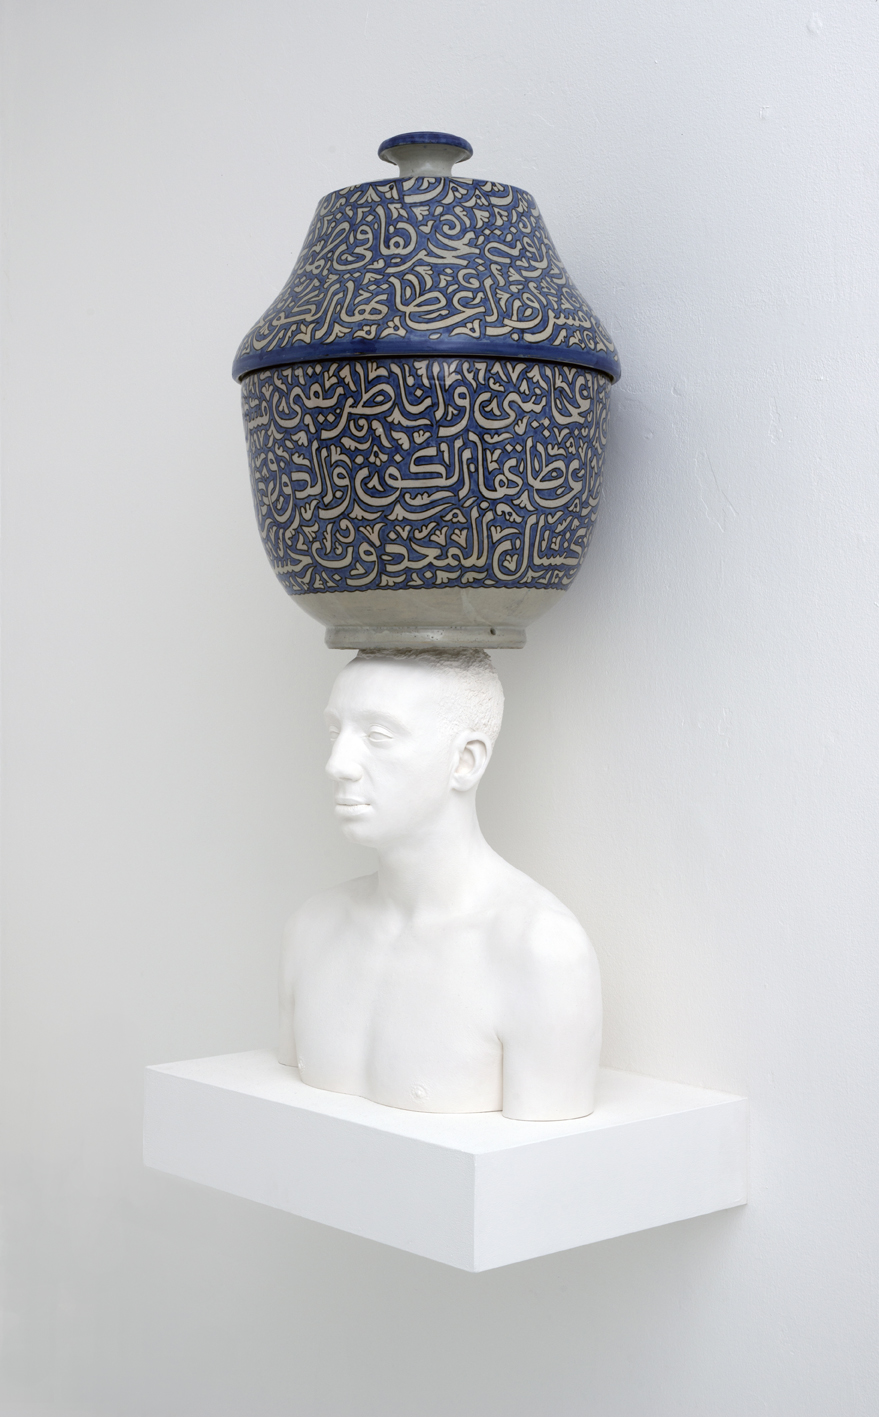 Mehdi-Georges Lahlou, Equilibre au Vase, 2012 - Courtesy the artist and Rabouan Moussion Paris